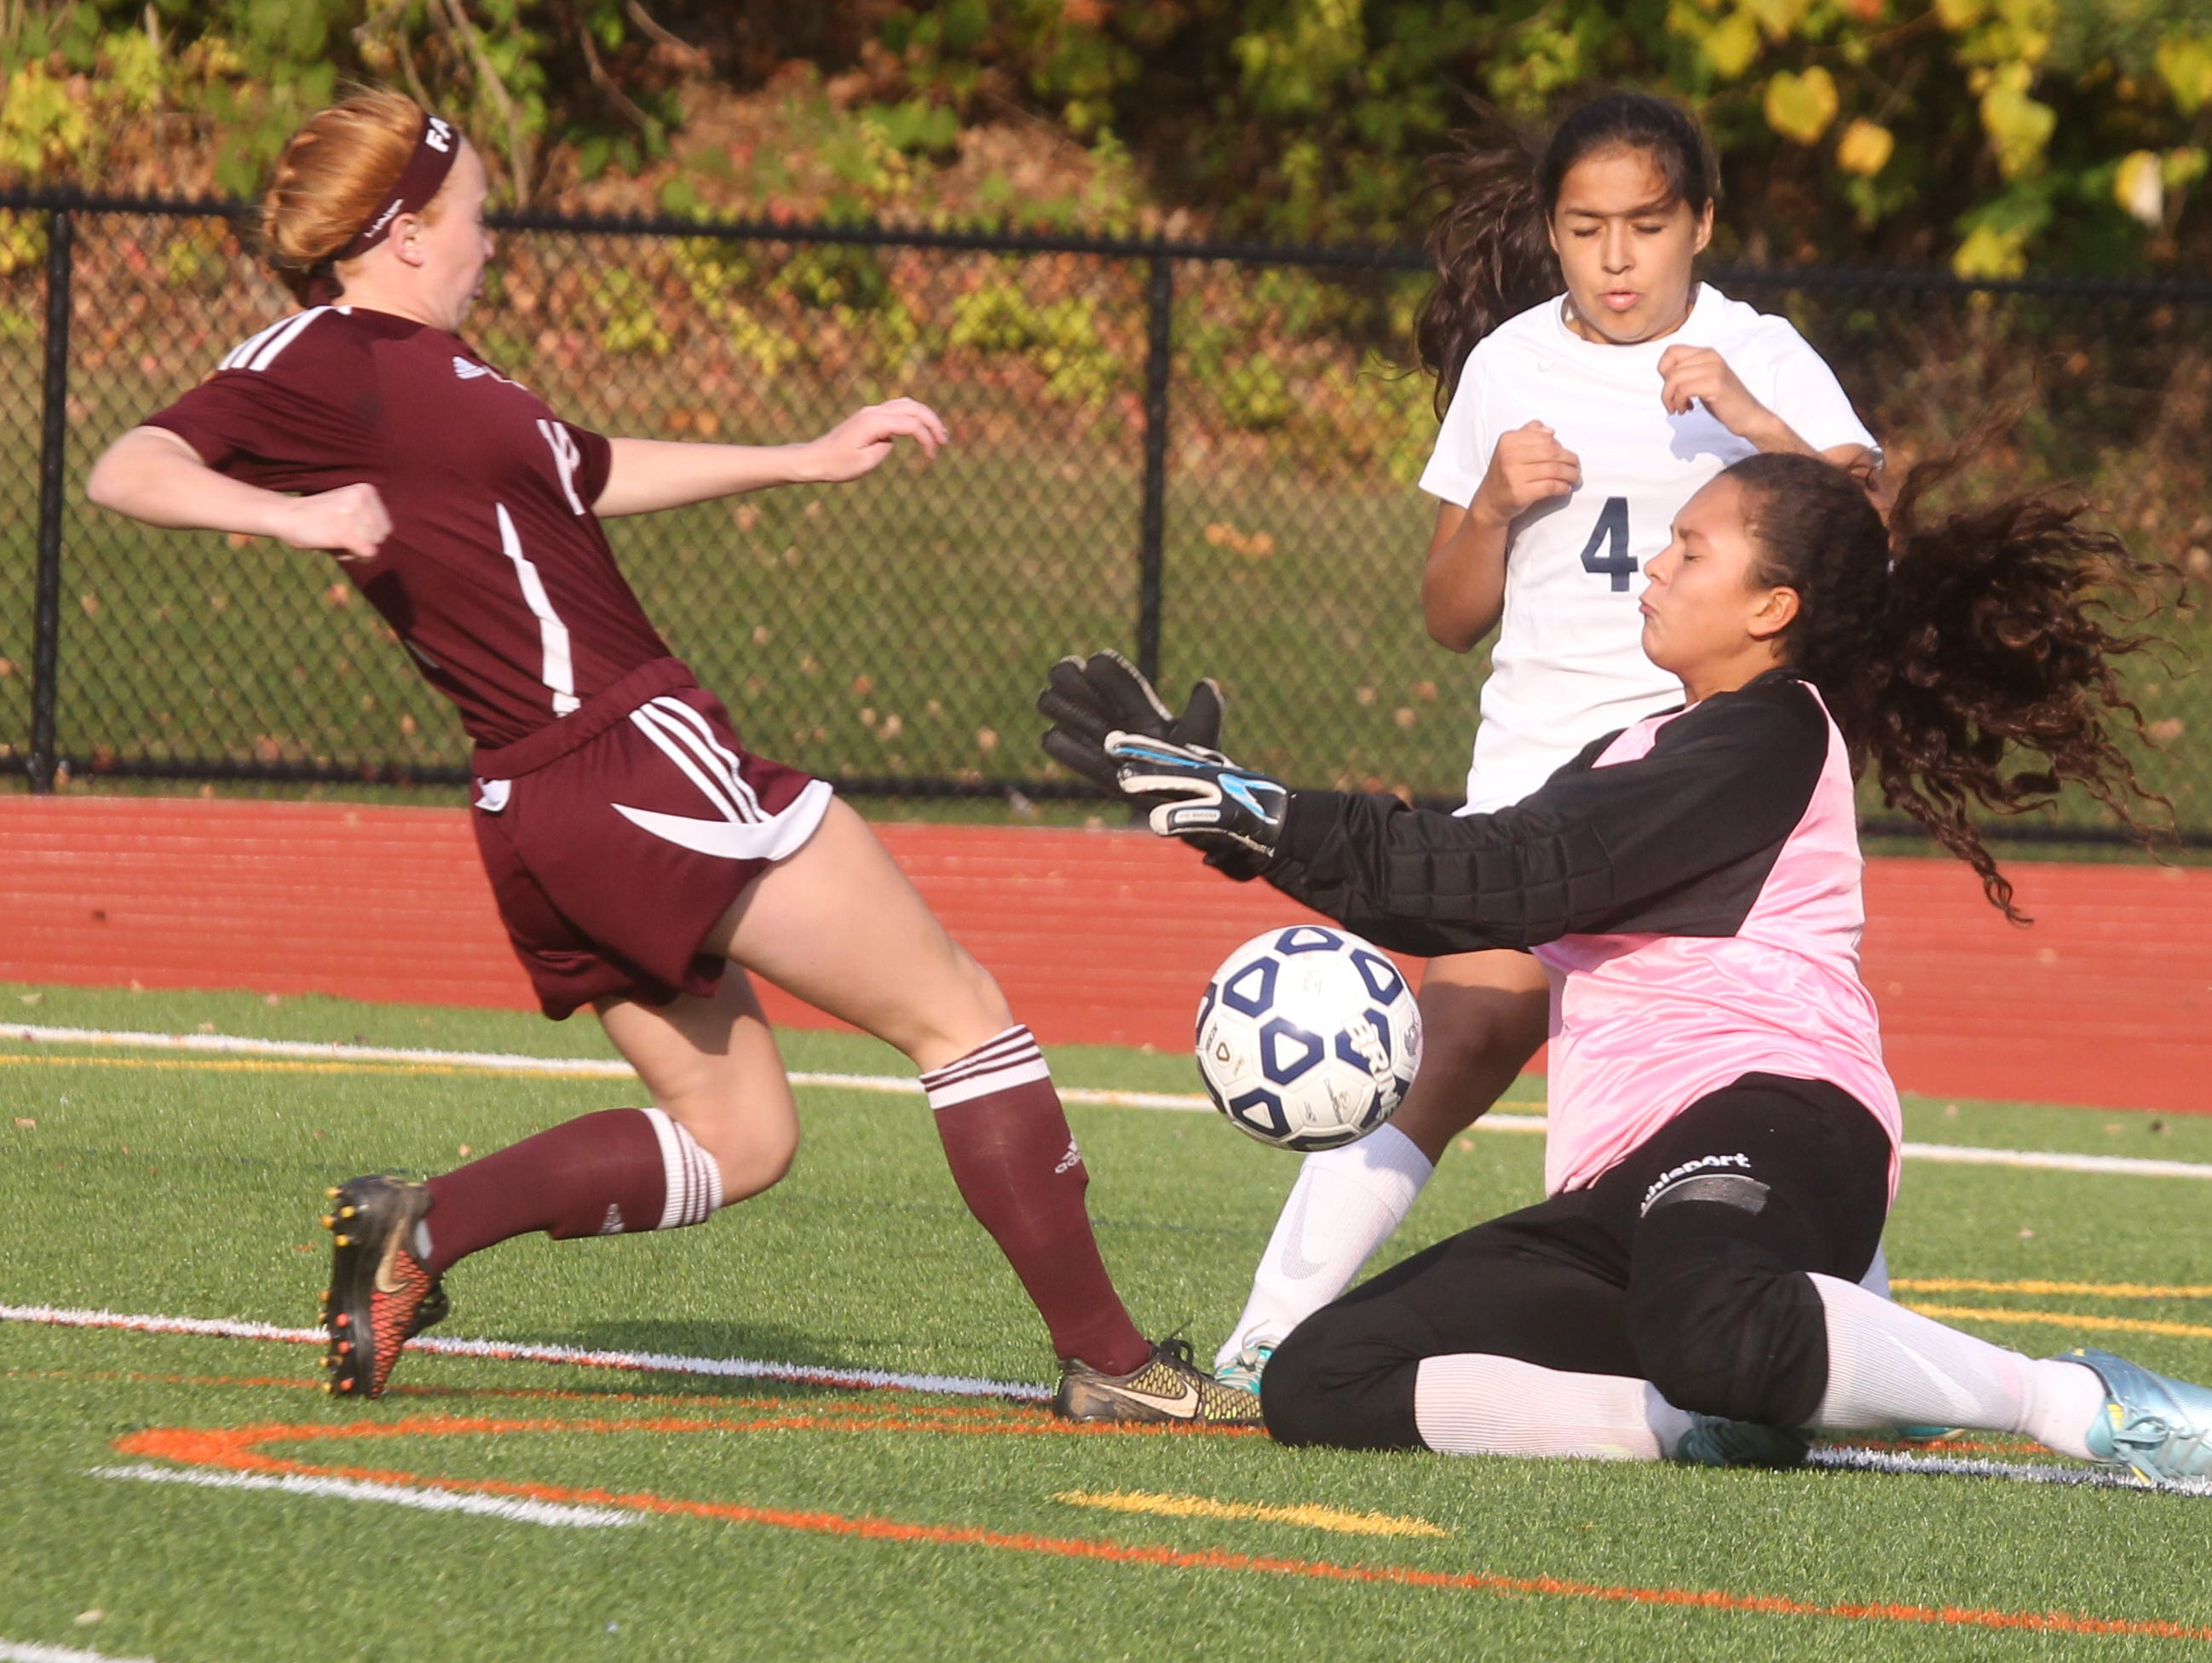 Albertus Magnus' Carly Clinton is stopped by Briarcliff goalie Khassandra Muniz during their game at Briarcliff Oct. 8, 2015.